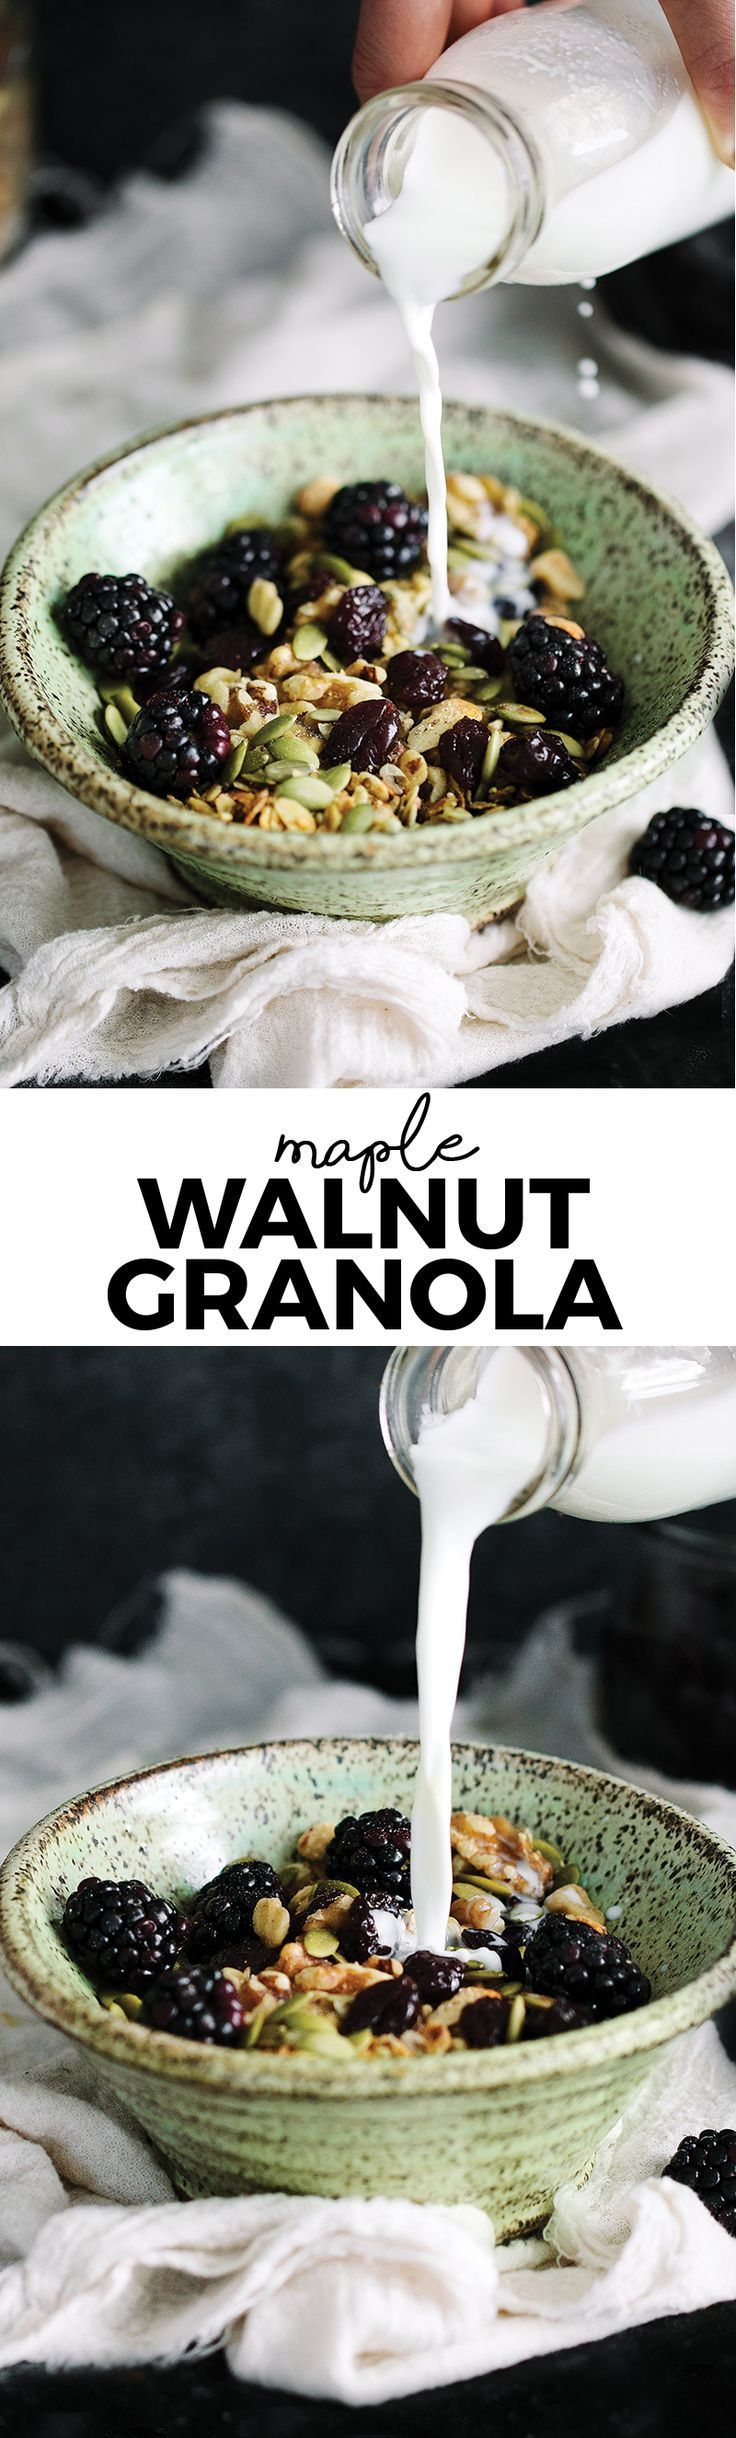 Make your own homemade granola with healthy, whole ingredients you already have in your kitchen. You're going to love this naturally gluten-free maple walnut granola